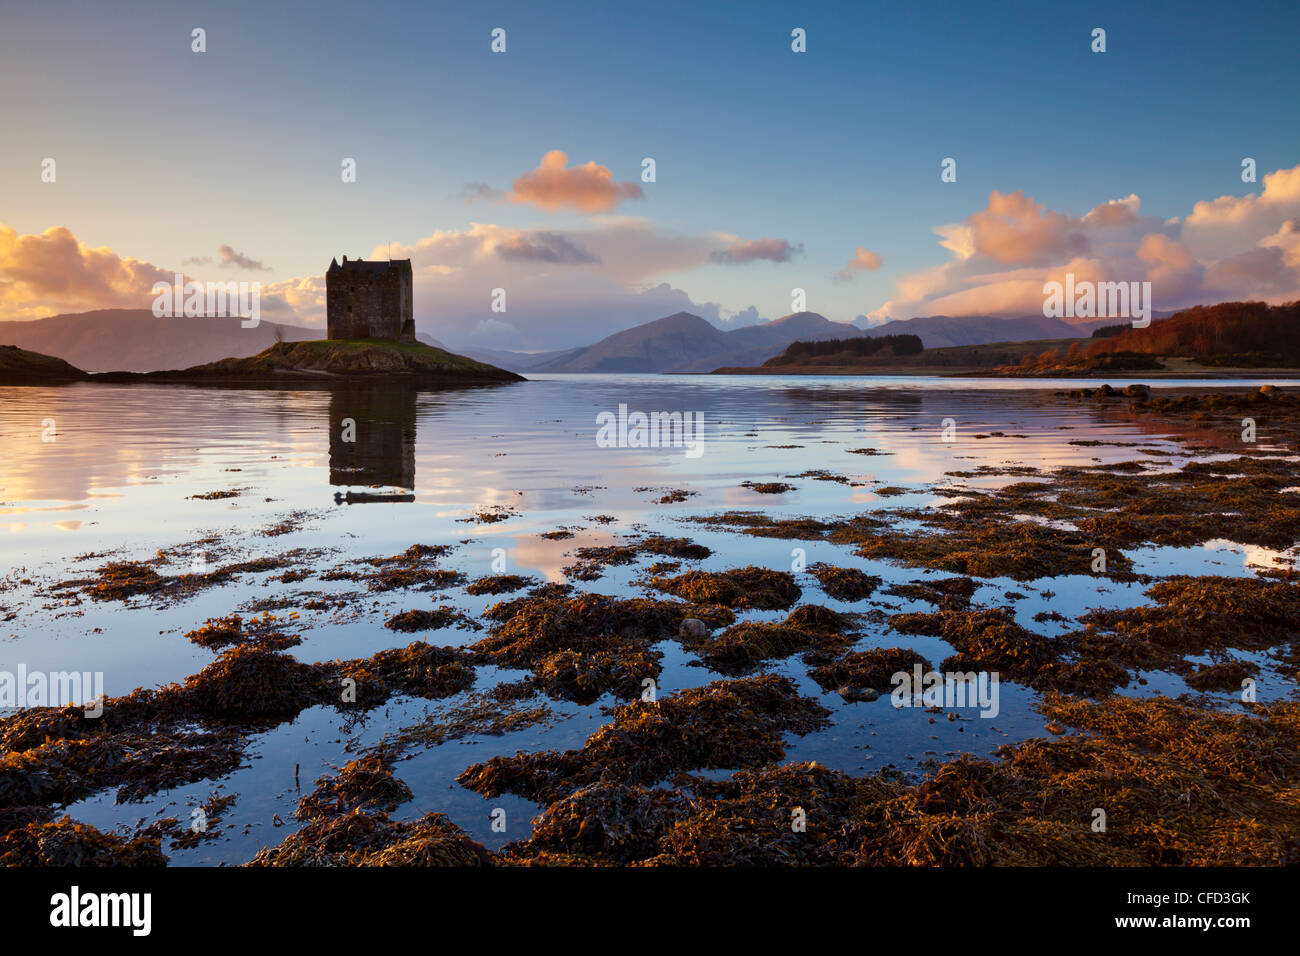 Silhouette of Castle Stalker, a Tower House,Keep, Loch Laich, Port Appin, Argyll, Highlands, Scotland, UK - Stock Image